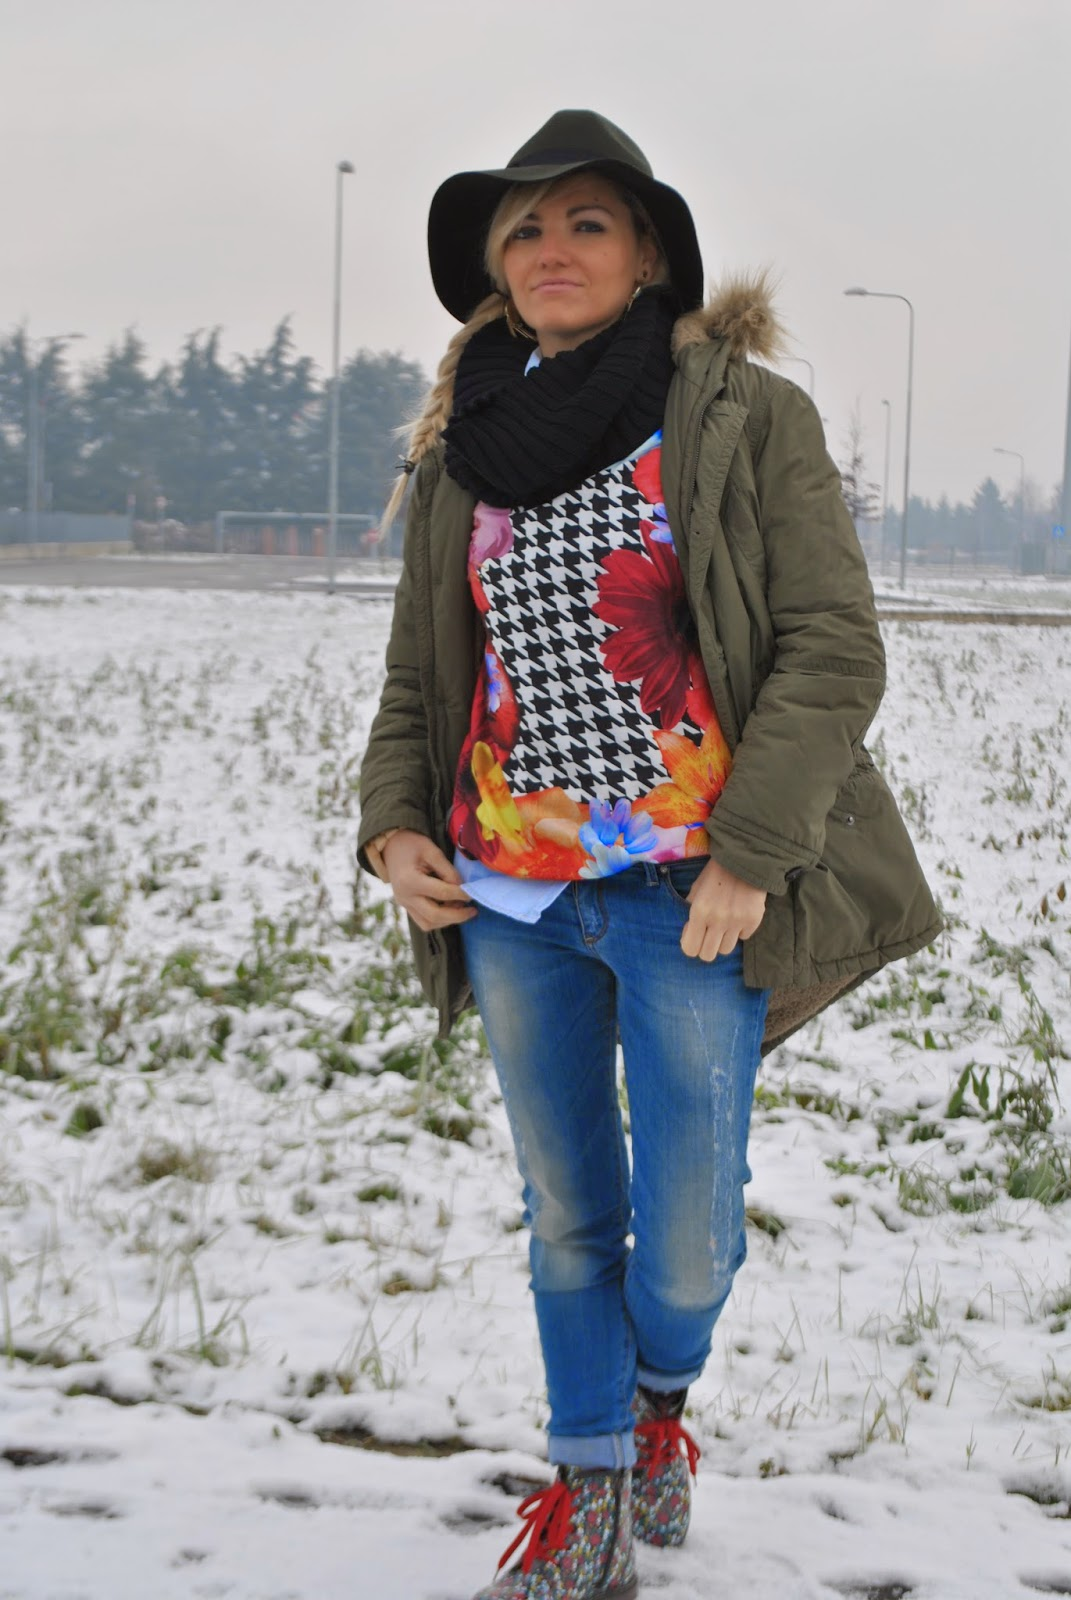 outfit invernali outfit felpa shop art felpa stampa pied de poule e fiori felpa stampa fiori cappello verde militare con piuma mango cappello fedora abbinamenti cappello fedora dr martens a fiori biker a fiori outfit sulla neve outfit dicembre 2014 outfit casual outfit invernali casual outfit parka benetton december outfits winter outfits how to wear fedora hat fedora hat outfits parka coat how to wear parka coat orologio in legno gufo design  orecchini majique london majique london earrings fashion blogger italiane mariafelicia magno fashion blogger colorblock by felym fashion blogger milano fashion blogger bionde ragazze bionde blonde girls girls italian girls italian fashion bloggers acconciatura treccia laterale come abbinare il parka come abbinare il verde militare